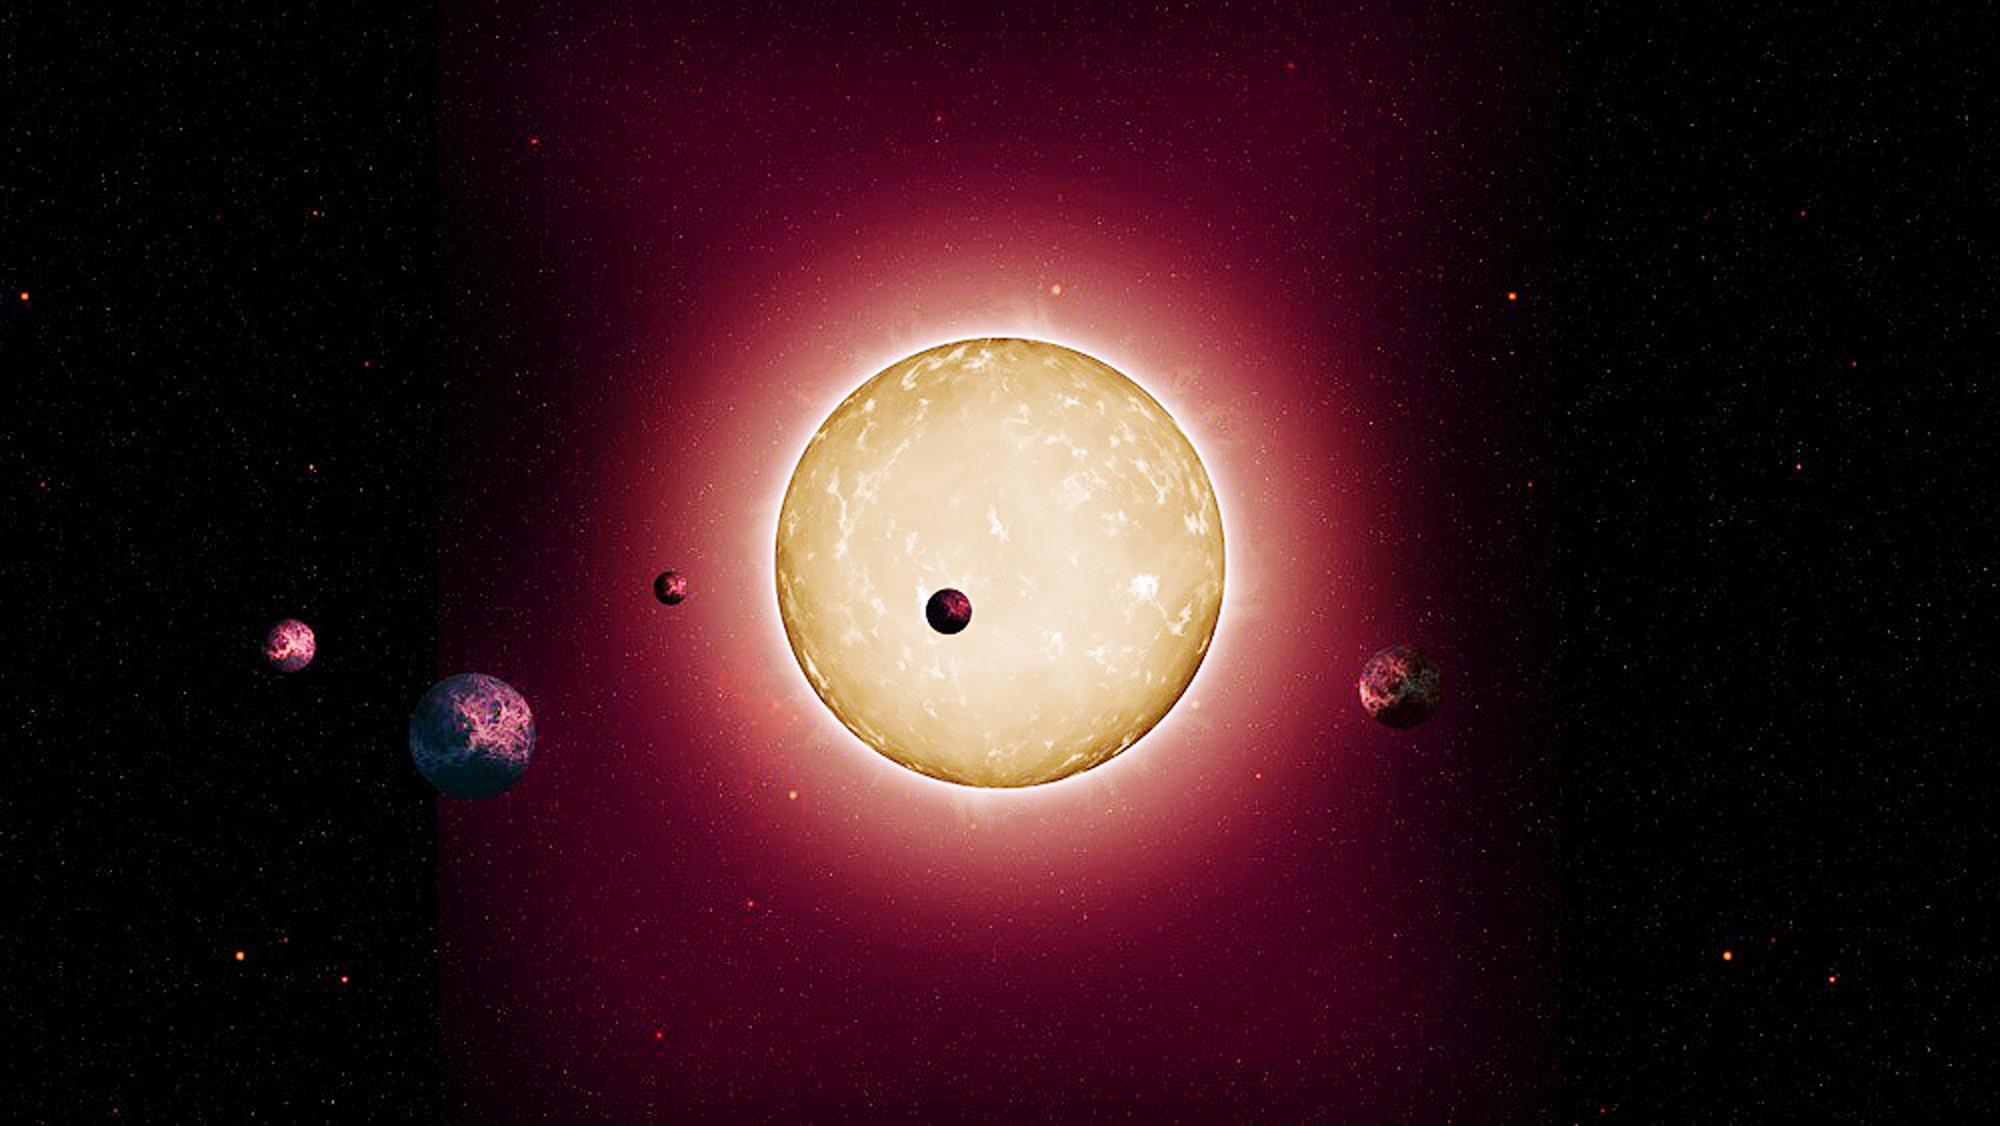 Astronomers find oldest known star with Earth-like planets